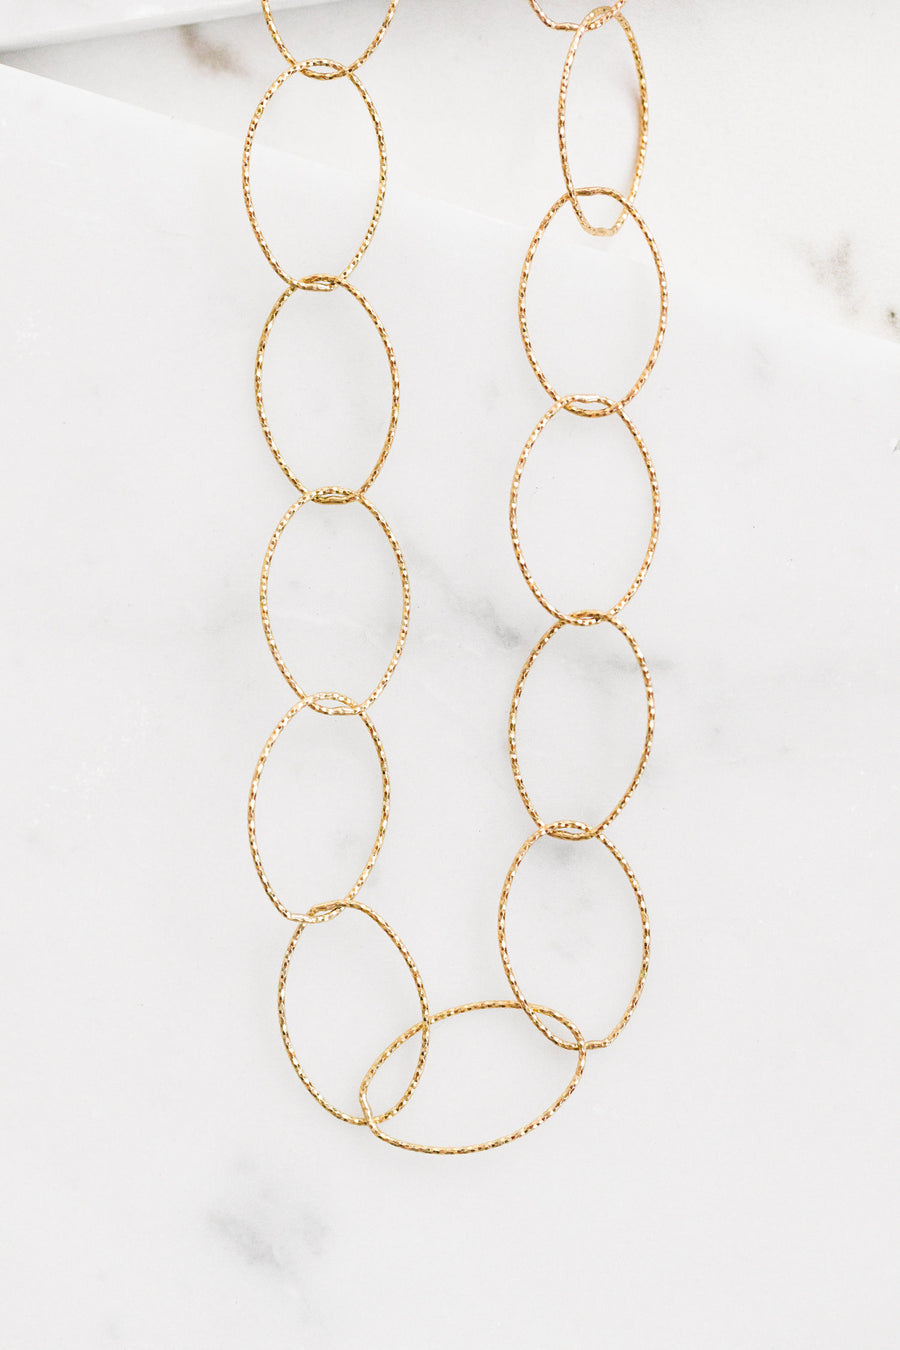 Find the perfect necklace you're looking for from Charme Silkiner! This beautiful 14K Gold Filled Diamond Cut Chain Necklace is perfection. Great for layering or wearing alone the Christa Necklace is the perfect piece of unique jewelry that everyone should own.